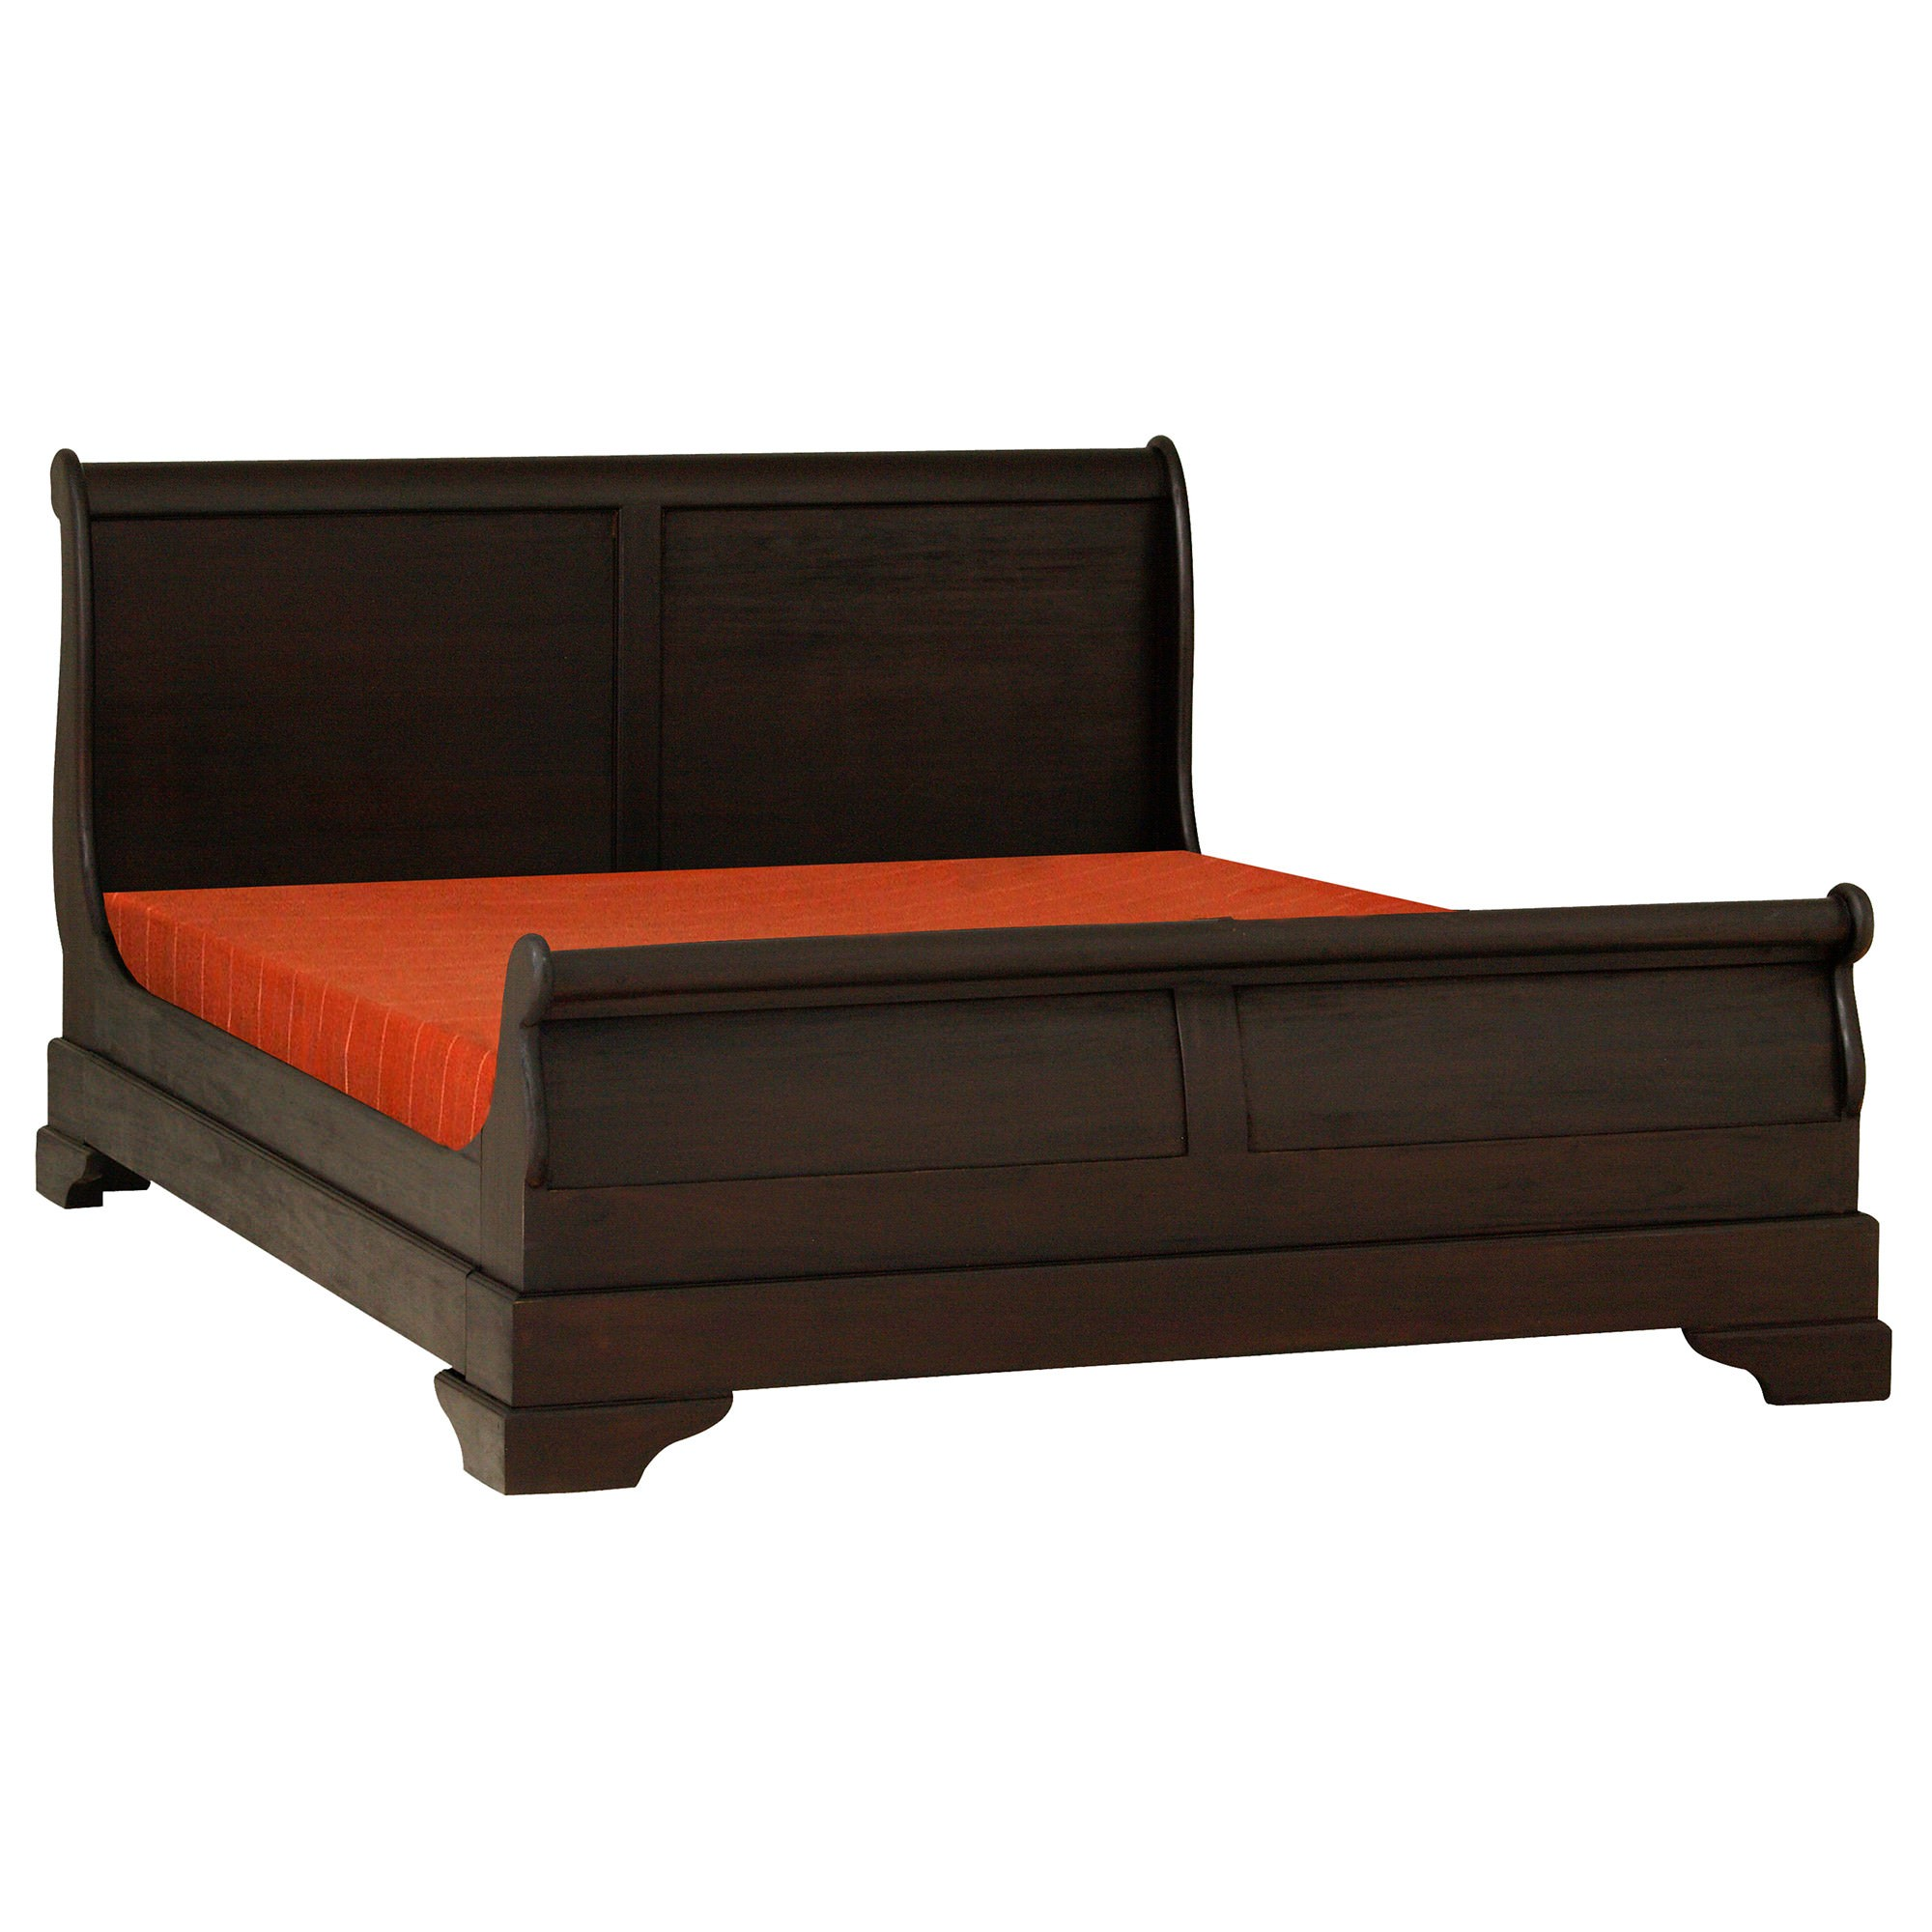 Liam Mahogany Timber Sleigh Bed, Queen, Chocolate